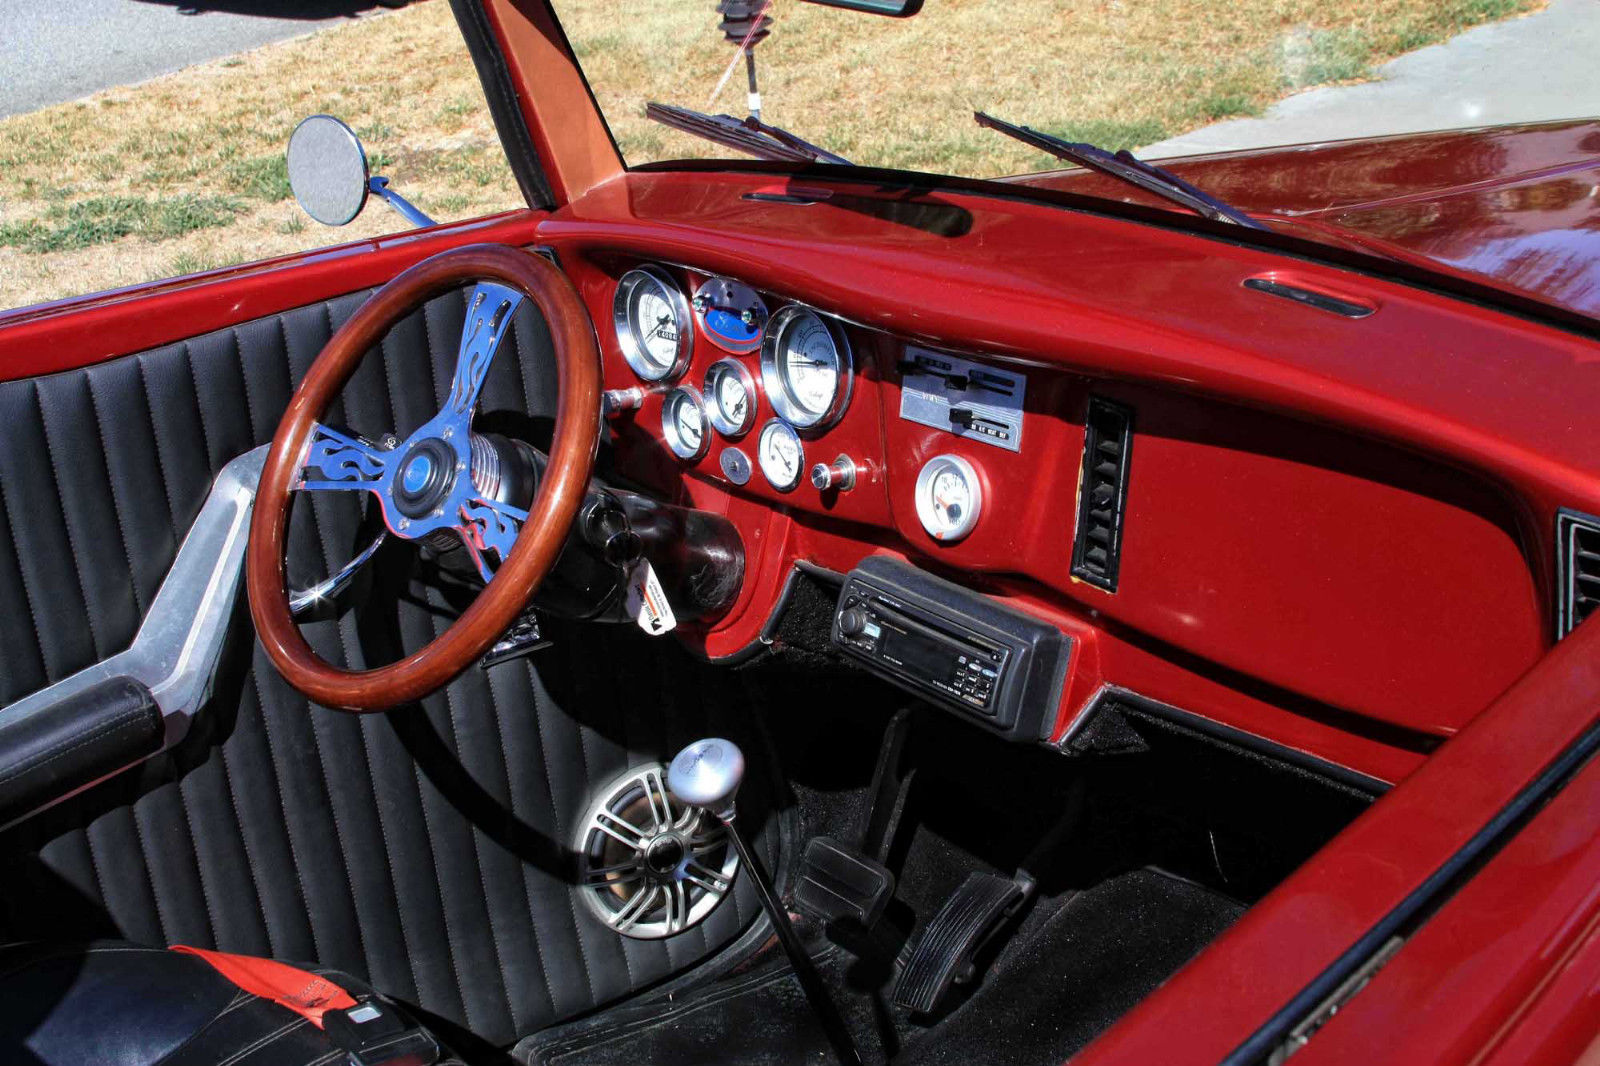 response to the red convertible The red convertible the story the red convertible written by louise erdrich, is about the lives of two chippewa brothers who live on an indian reservation and their red convertible.